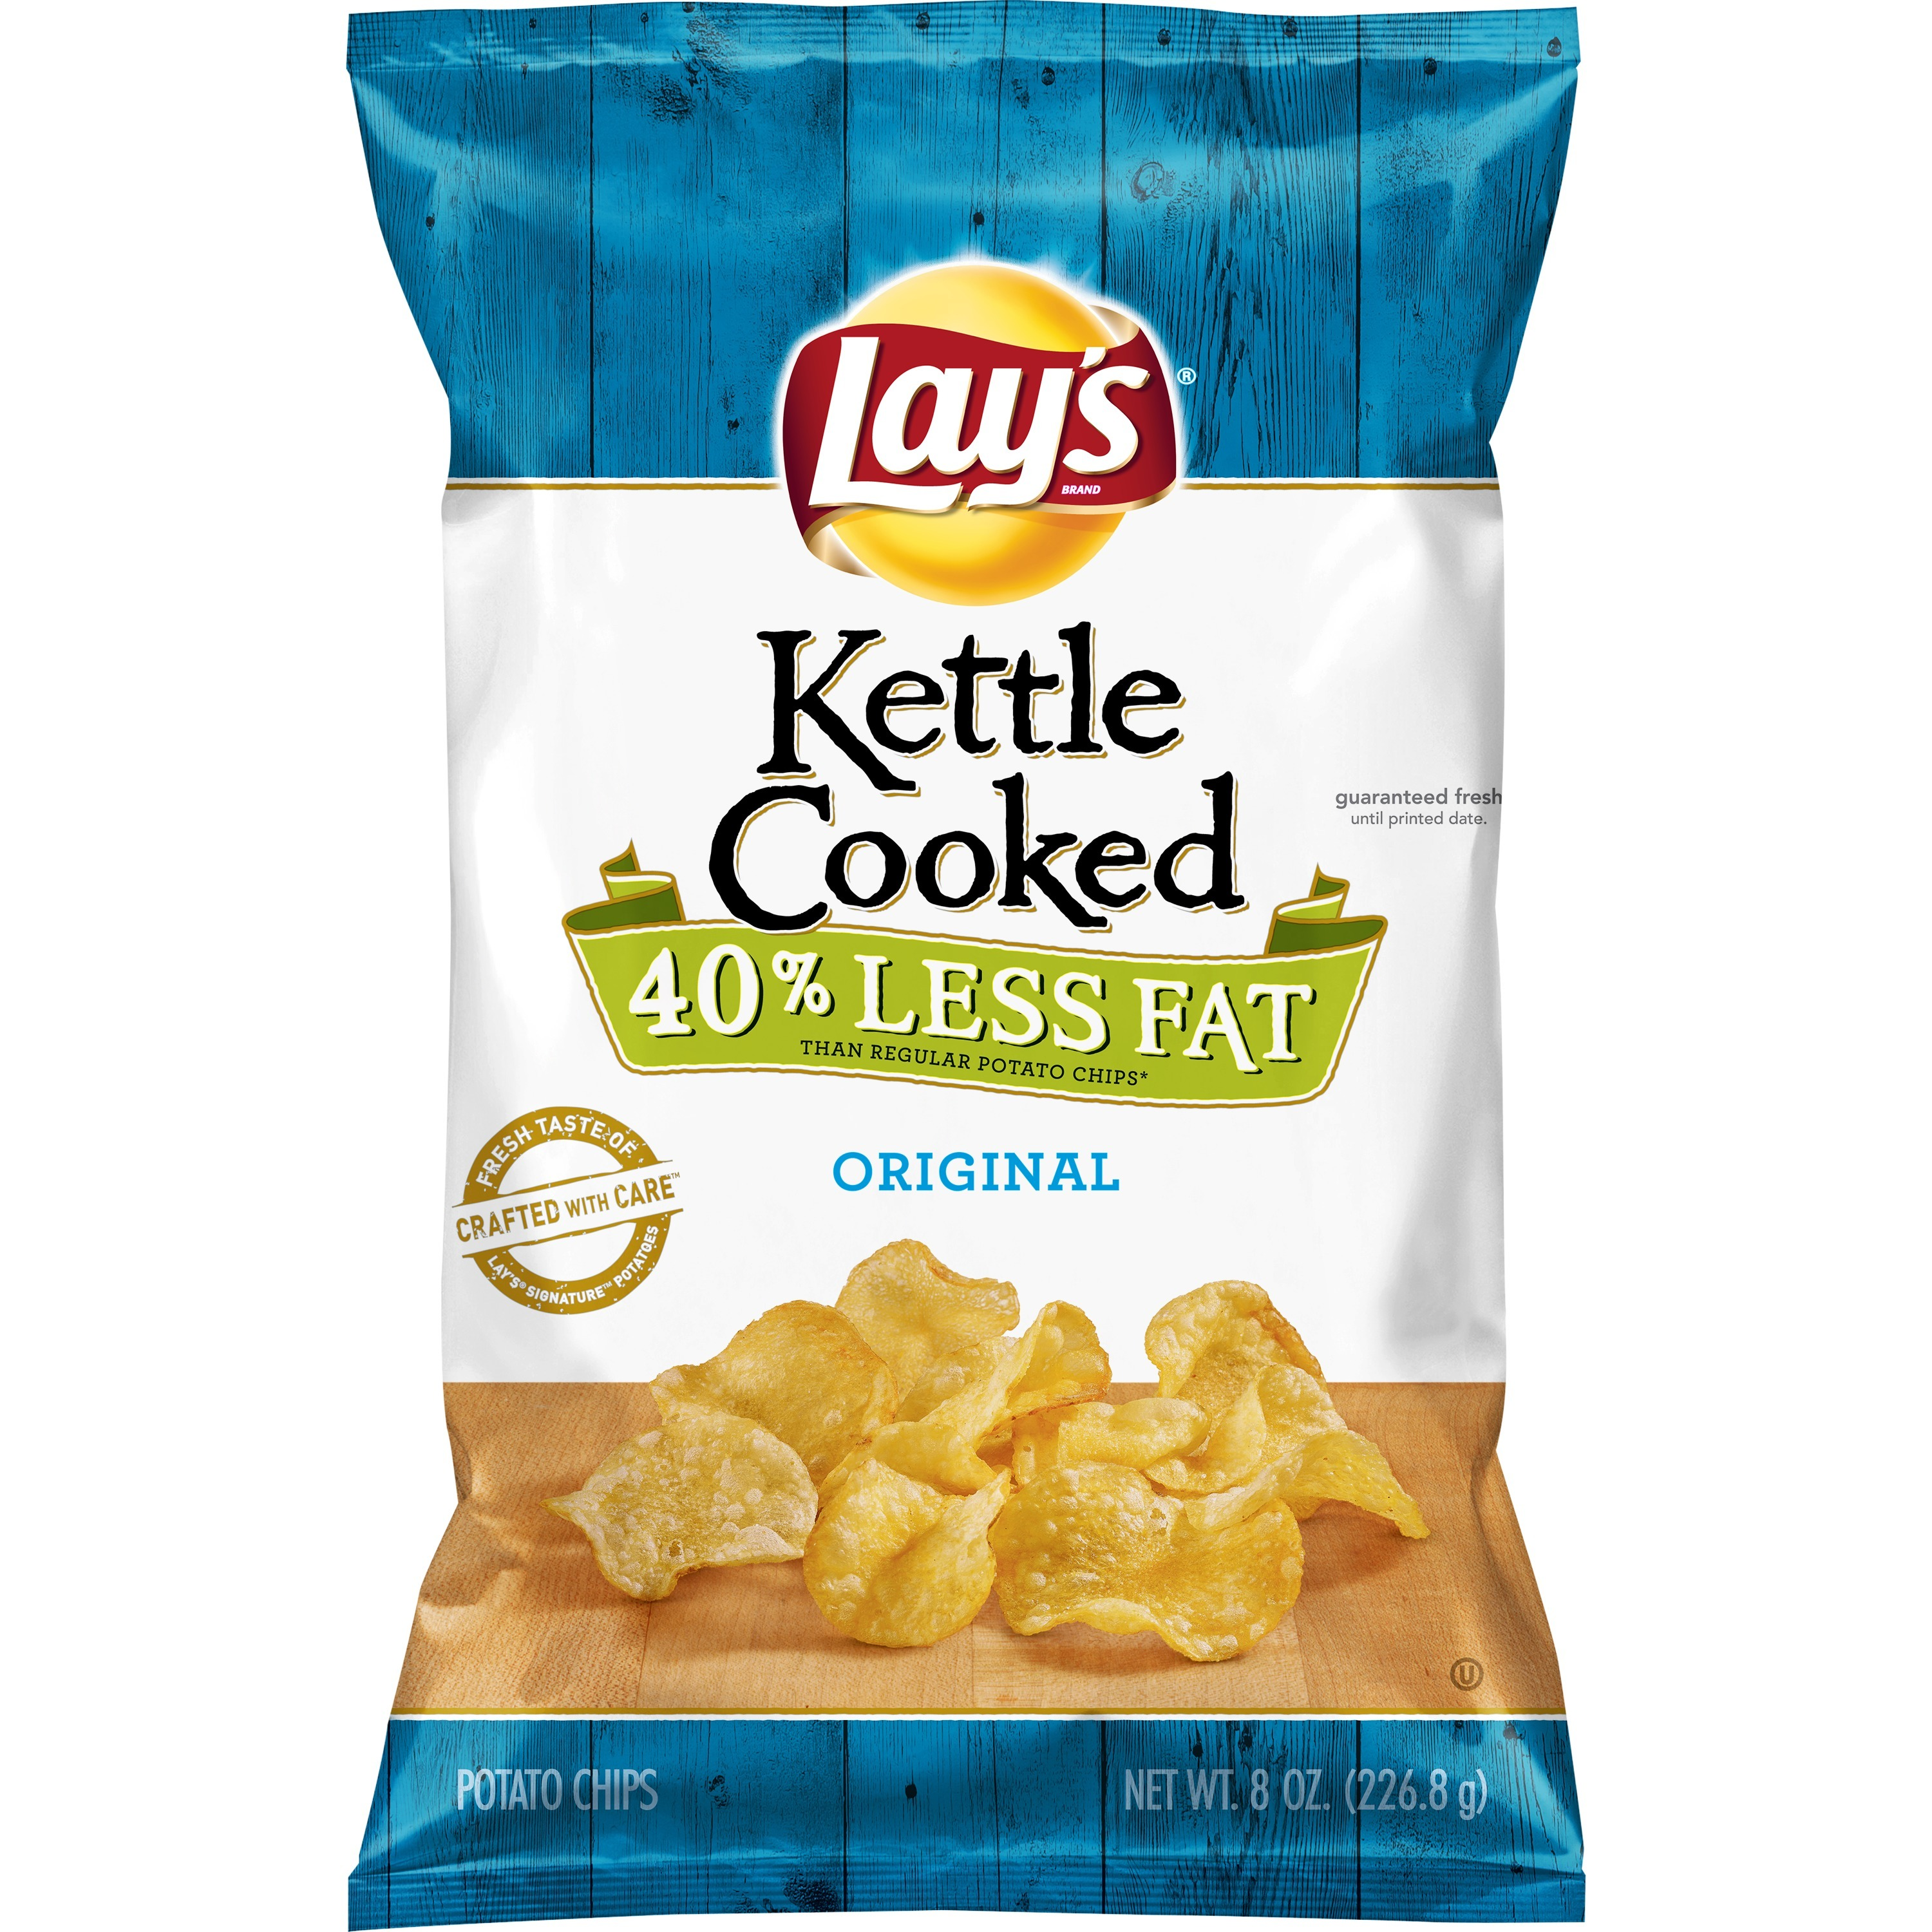 Lay's Kettle Cooked Potato Chips, Reduced Fat, Original, 8 oz. Bag